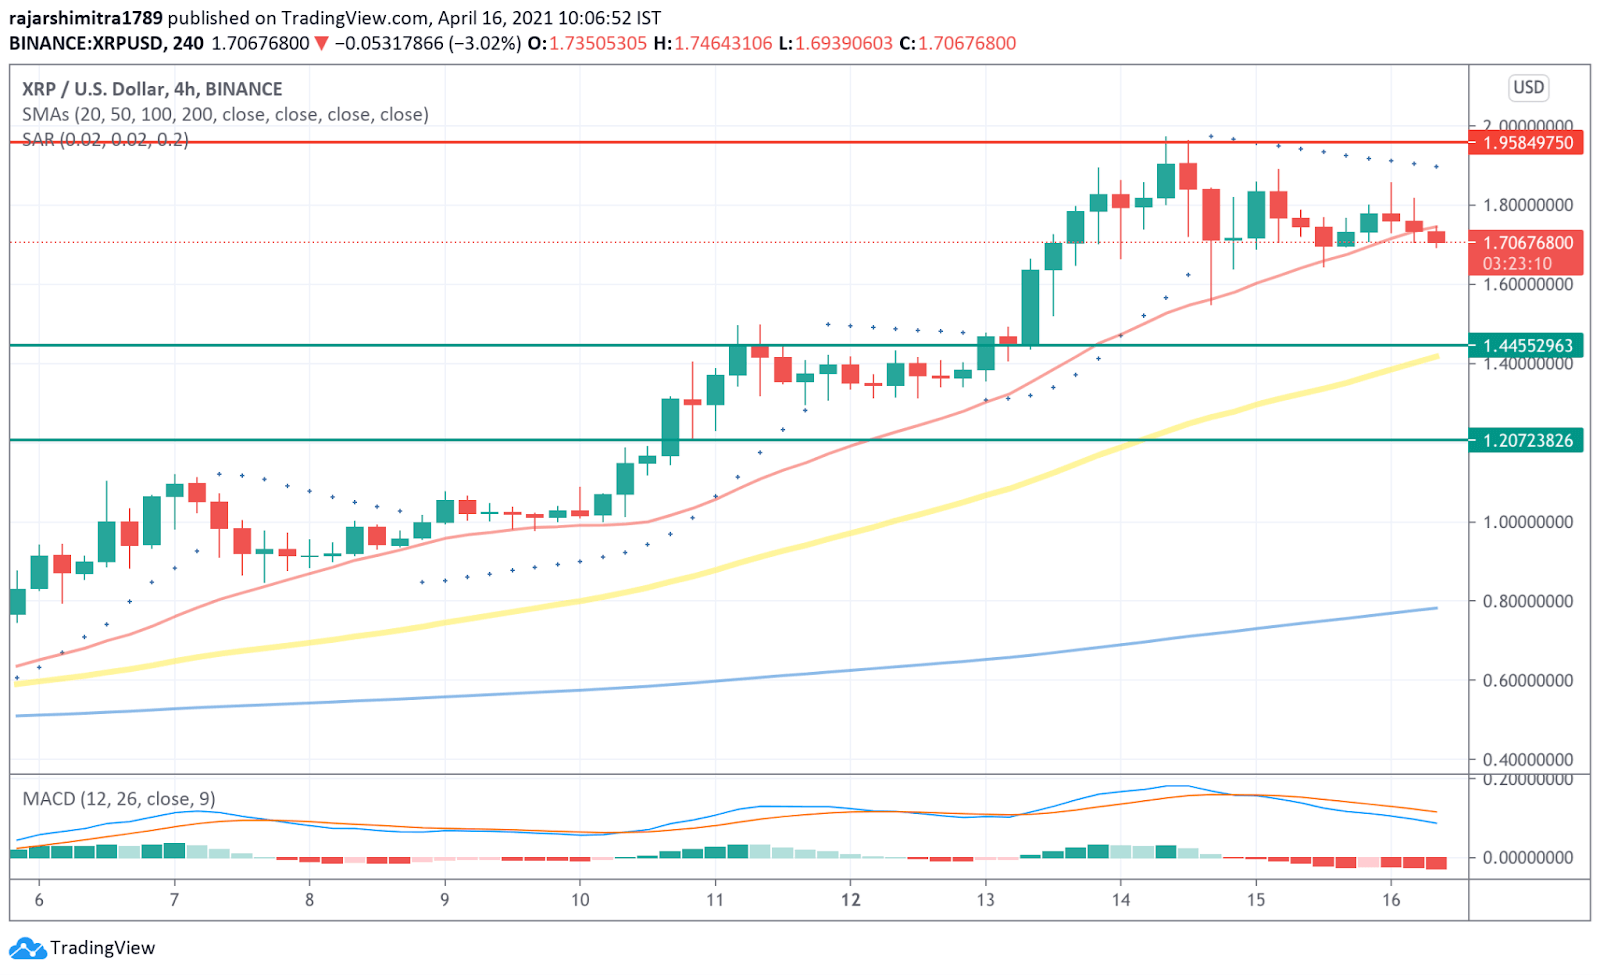 xrp/usd 4-hour chart 041621